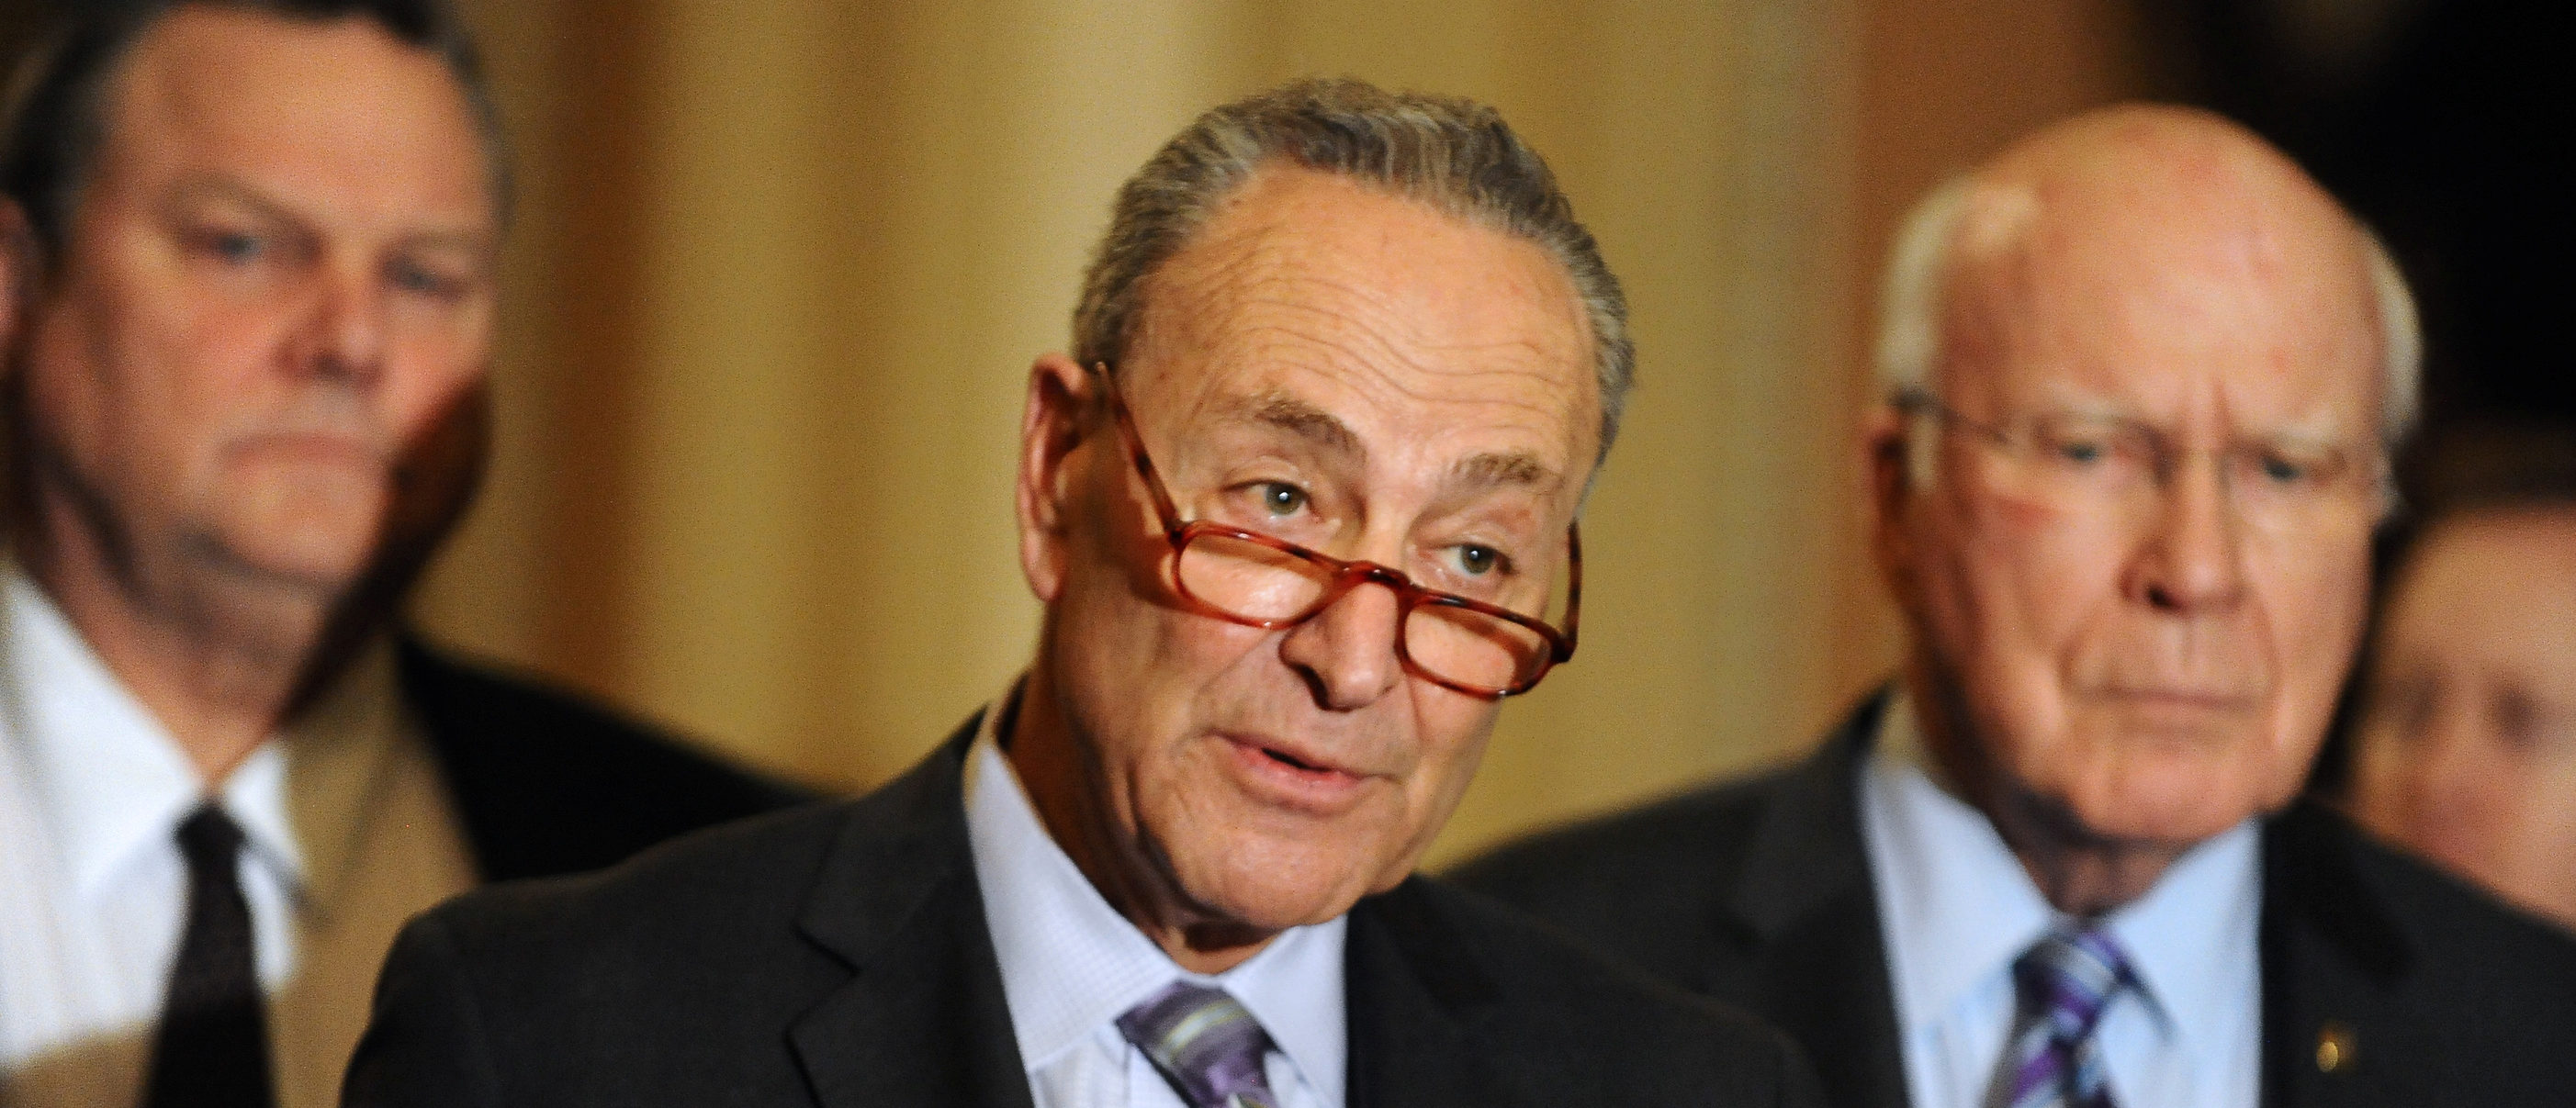 Sen. Chuck Schumer (D-NY) speaks to the media at the U.S. Capitol after a tentative deal is set to avert a second partial government shutdown in Washington, U.S., February 12, 2019. REUTERS/Mary F. Calvert.